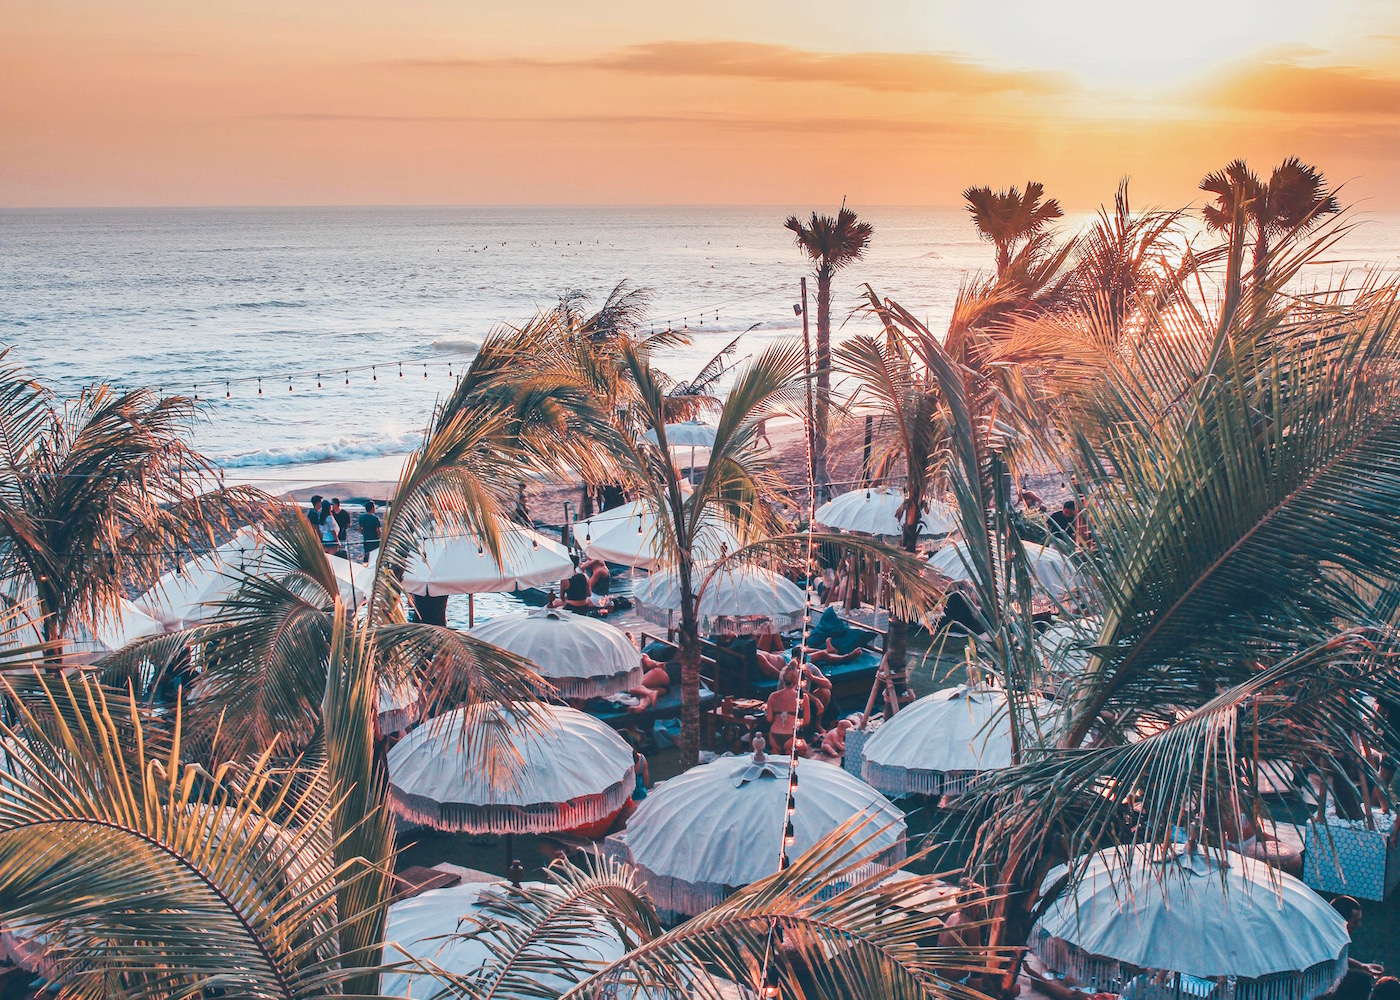 Sunset and ocean views at The Lawn beach club in Canggu, Bali, Indonesia